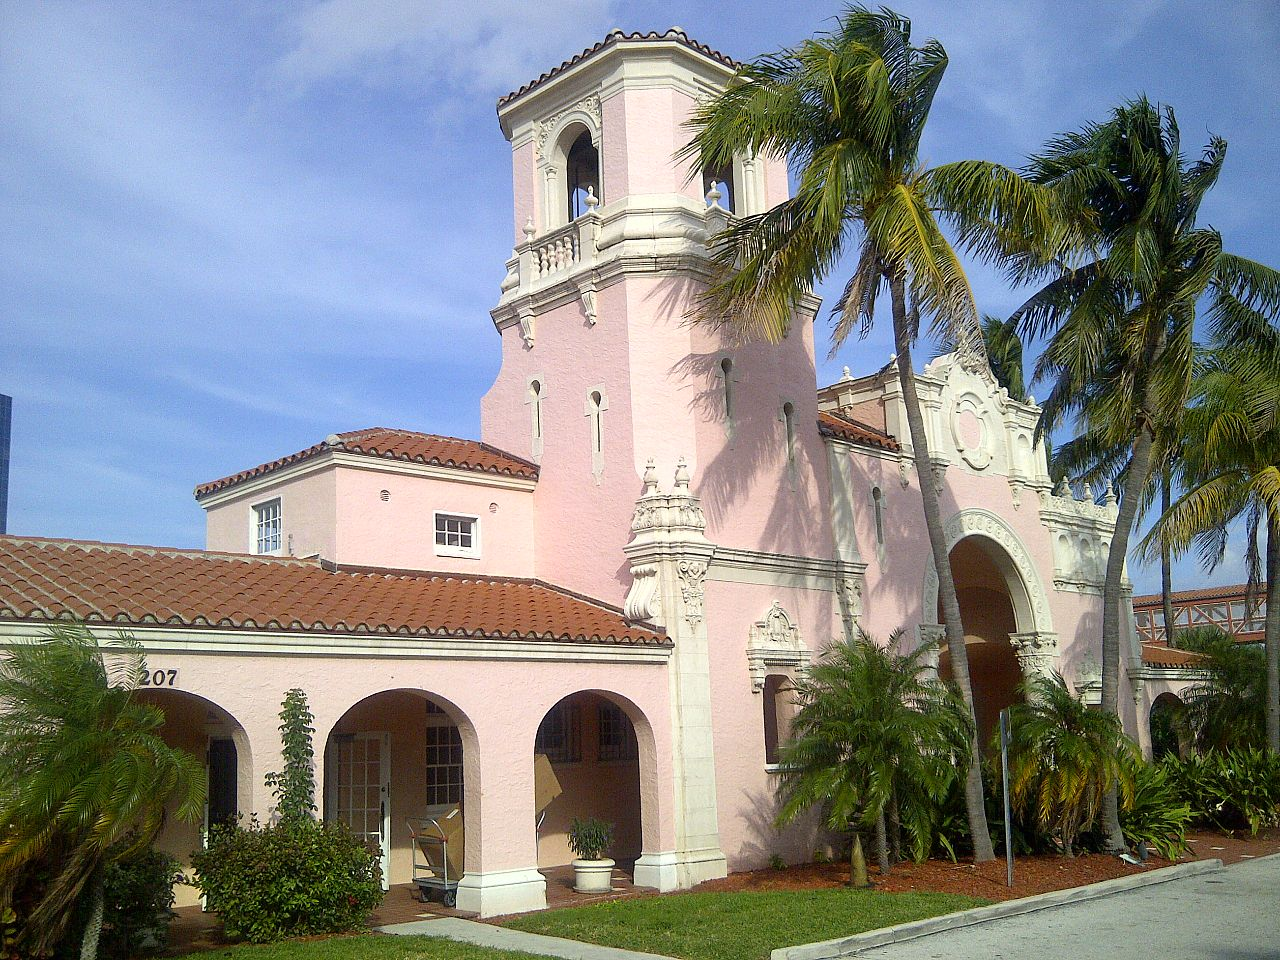 The West Palm Beach Station is a beautiful historic train station built in 1925. It is still a key transportation hub for the city.